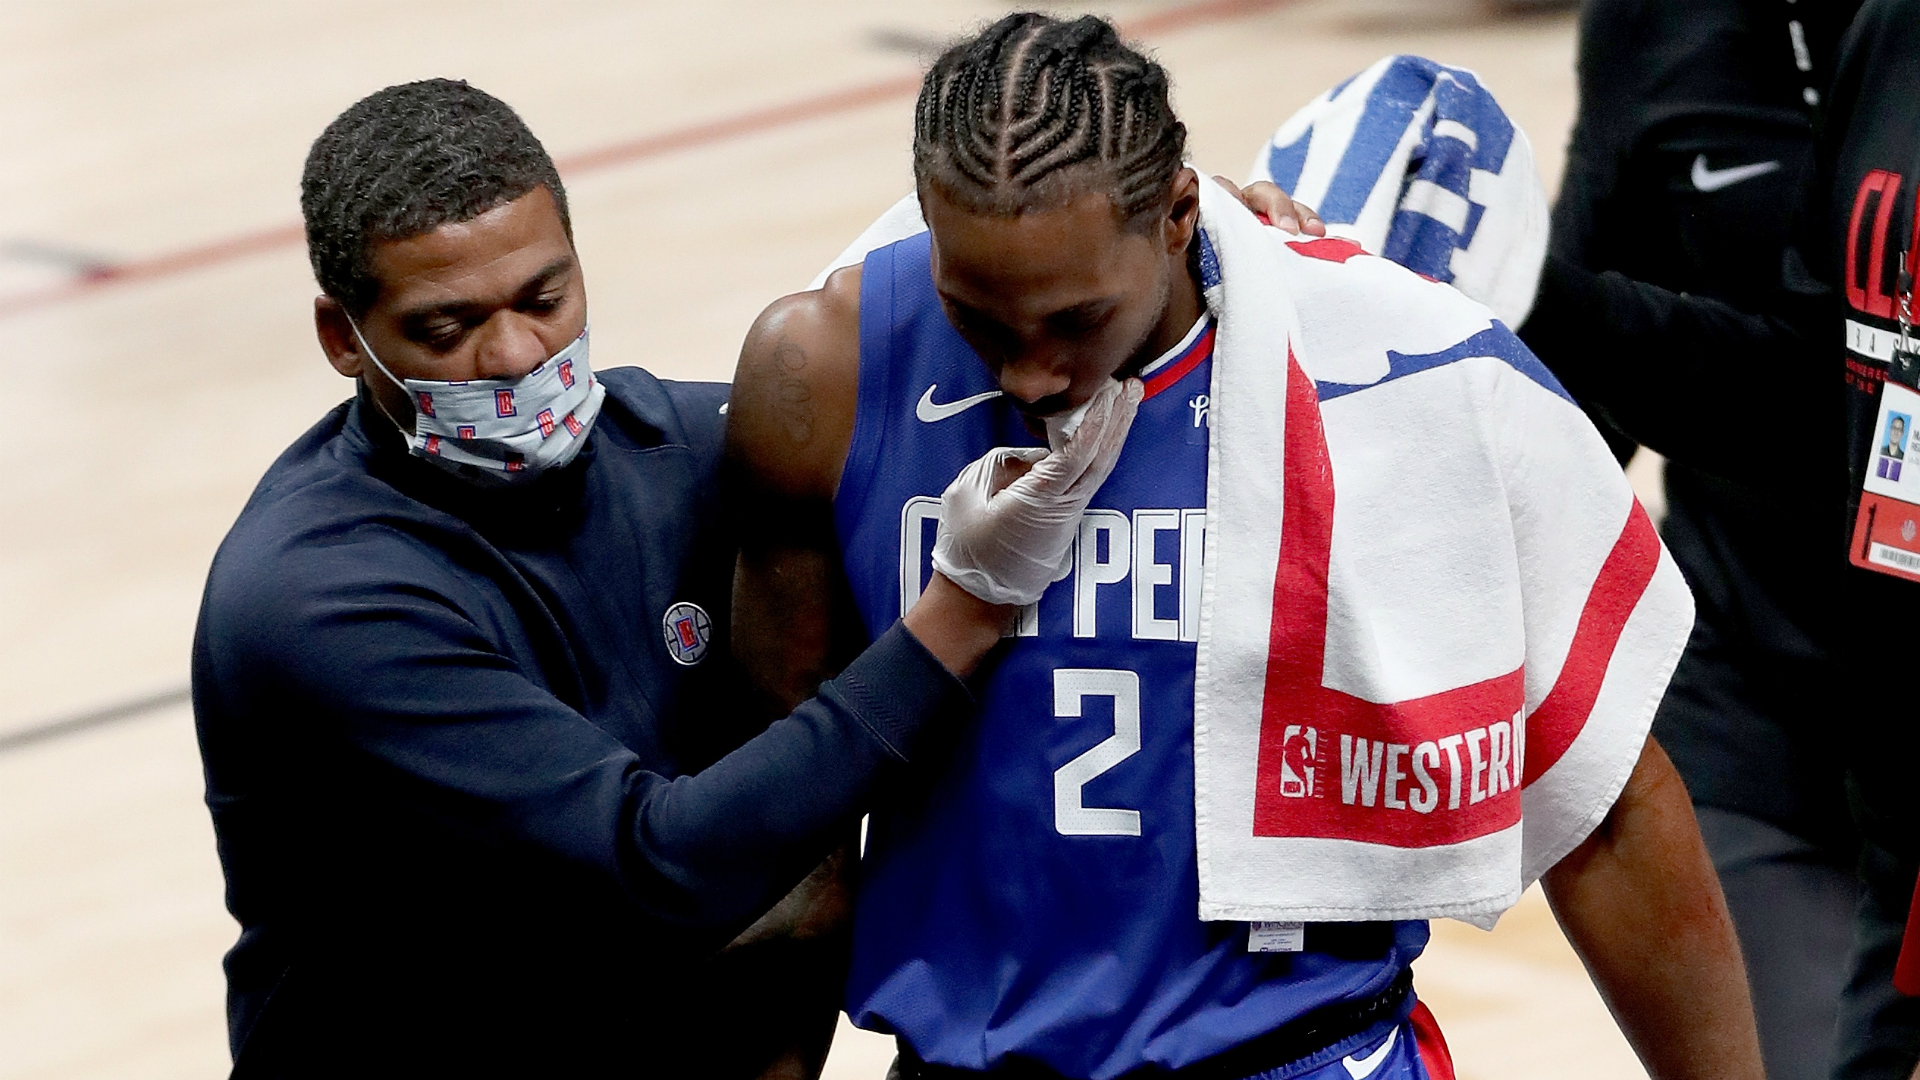 Kawhi Leonard 'day-to-day' as Clippers star remains sidelined